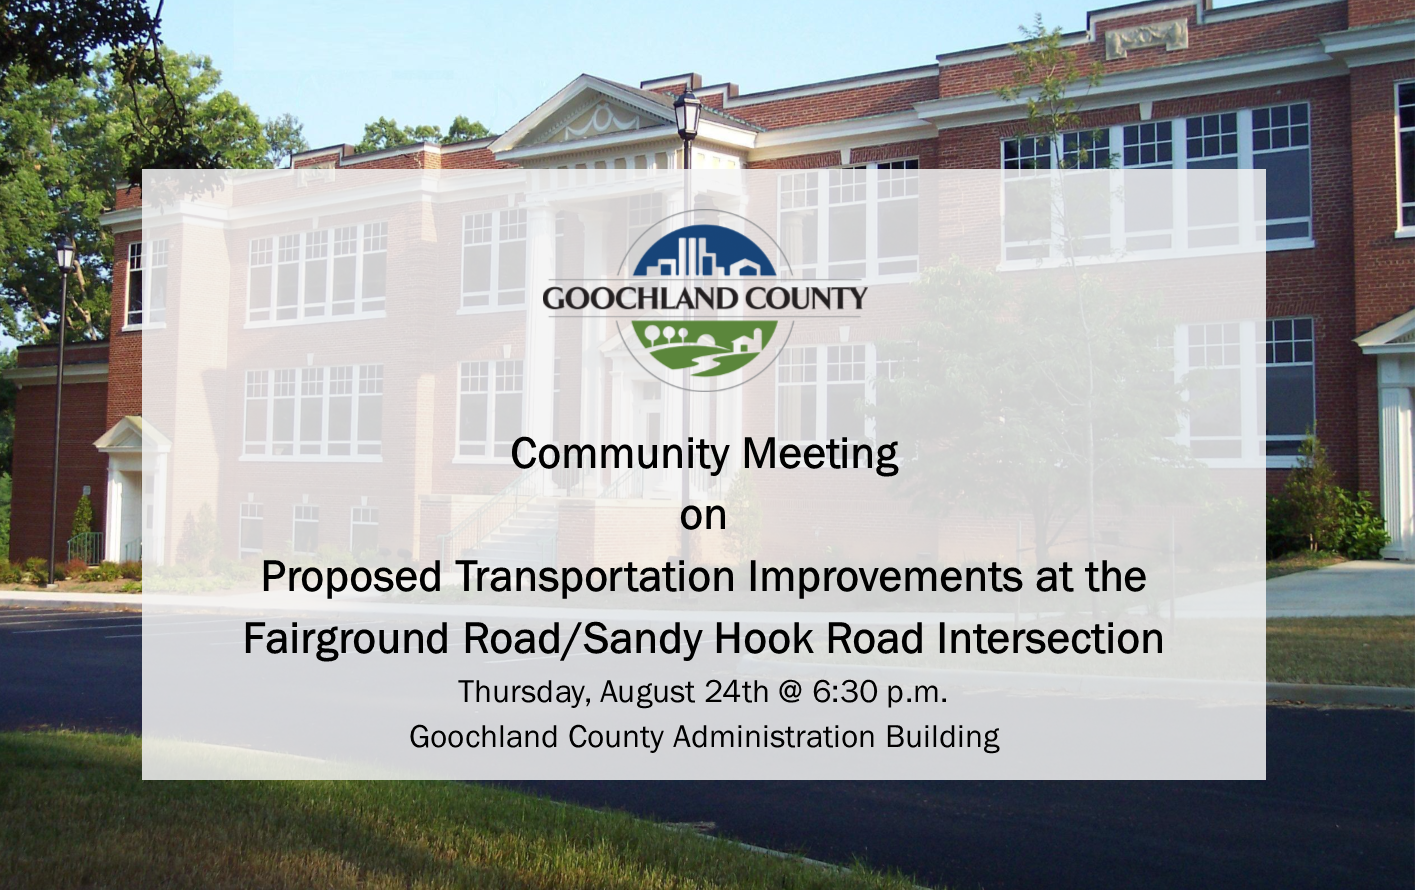 Goochland Community Meeting - Fairground Road-Sandy Hook Road Intersection